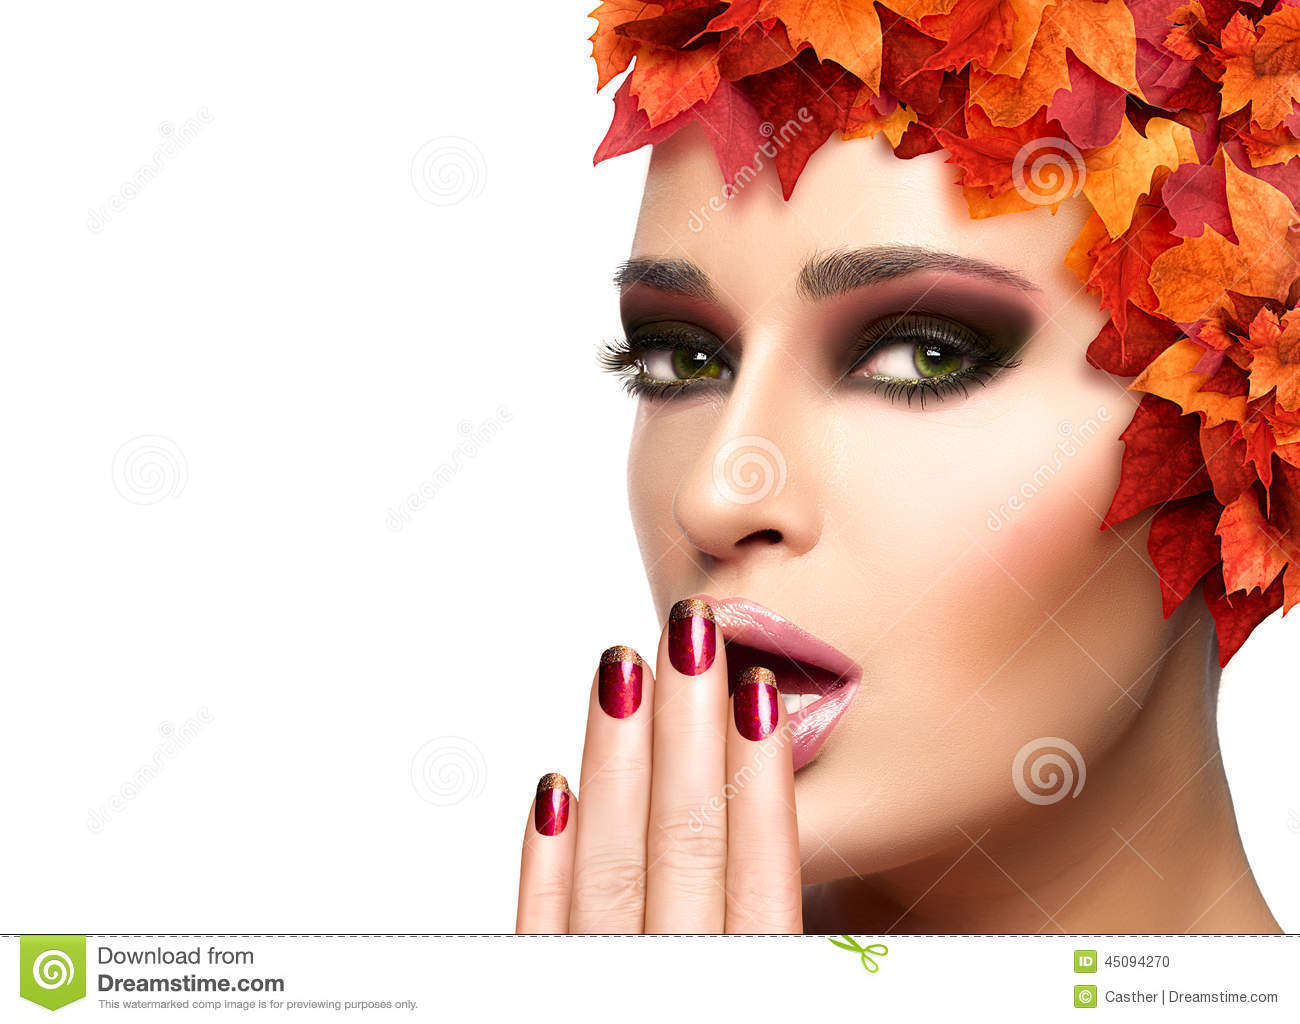 Autumn Makeup And Nail Art Trend. Beauty Fashion Girl